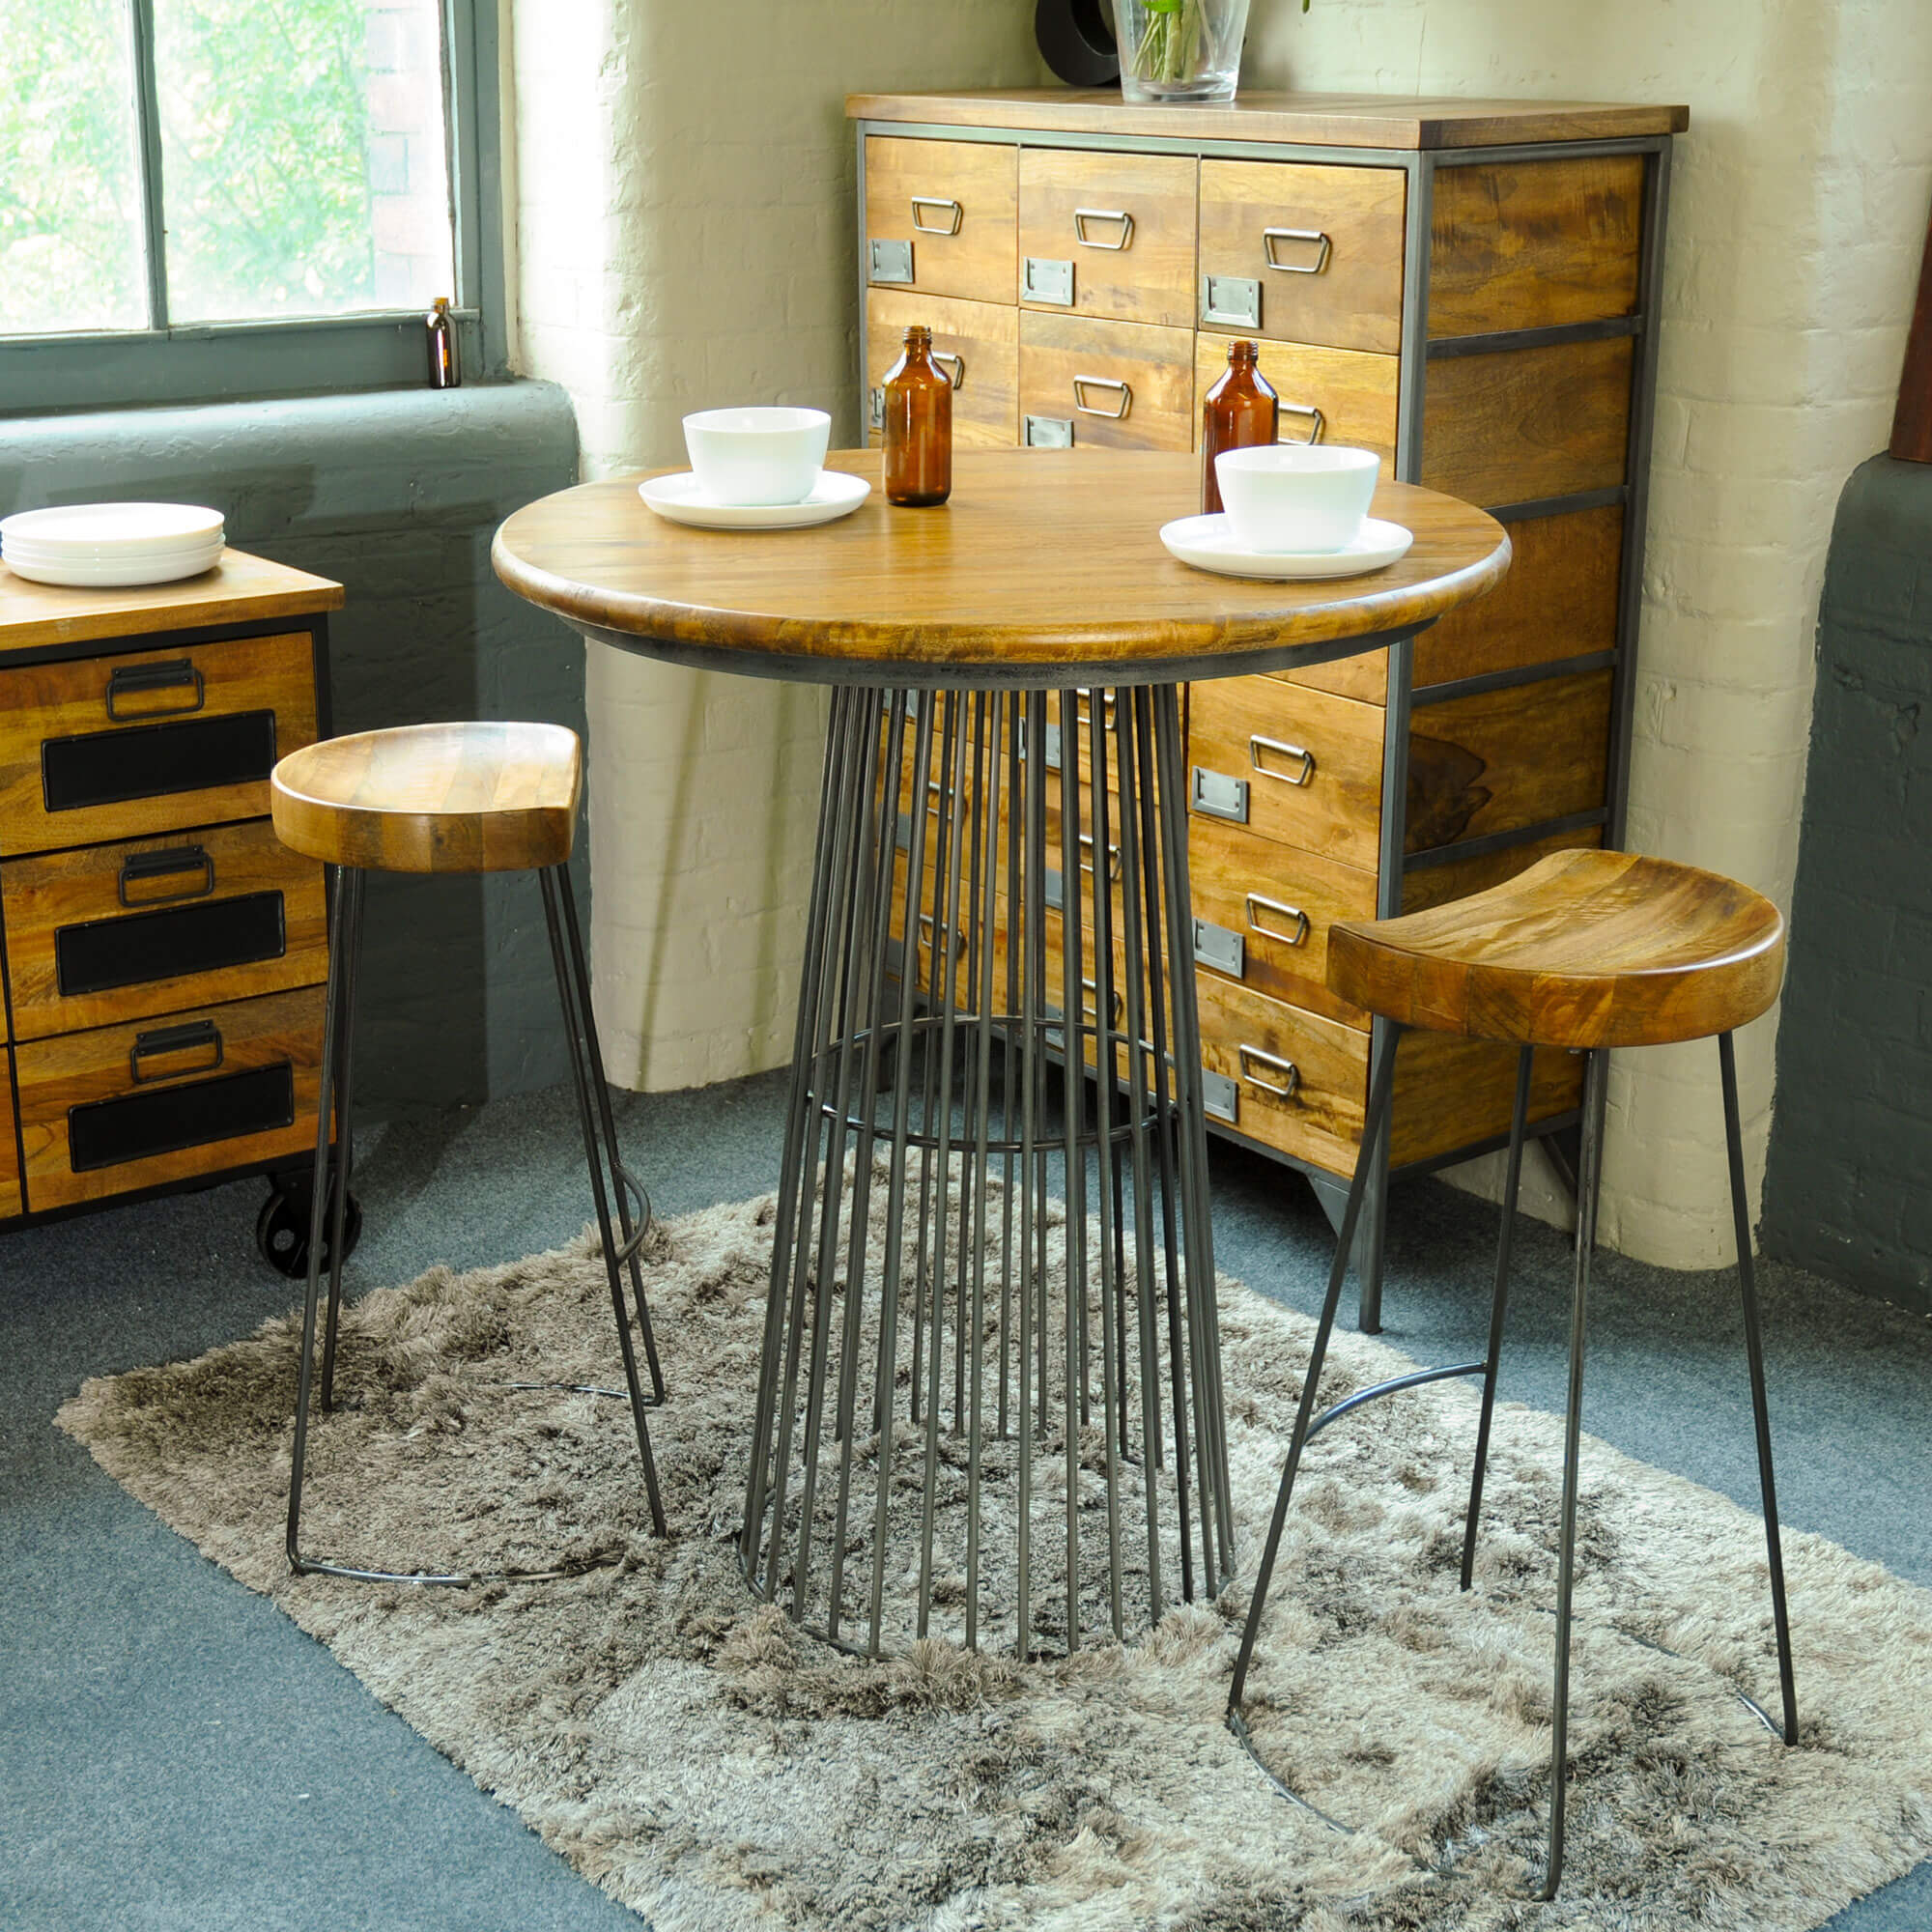 Urban Birdcage Bar Table with 2 Stools   Furniture Supplies UK